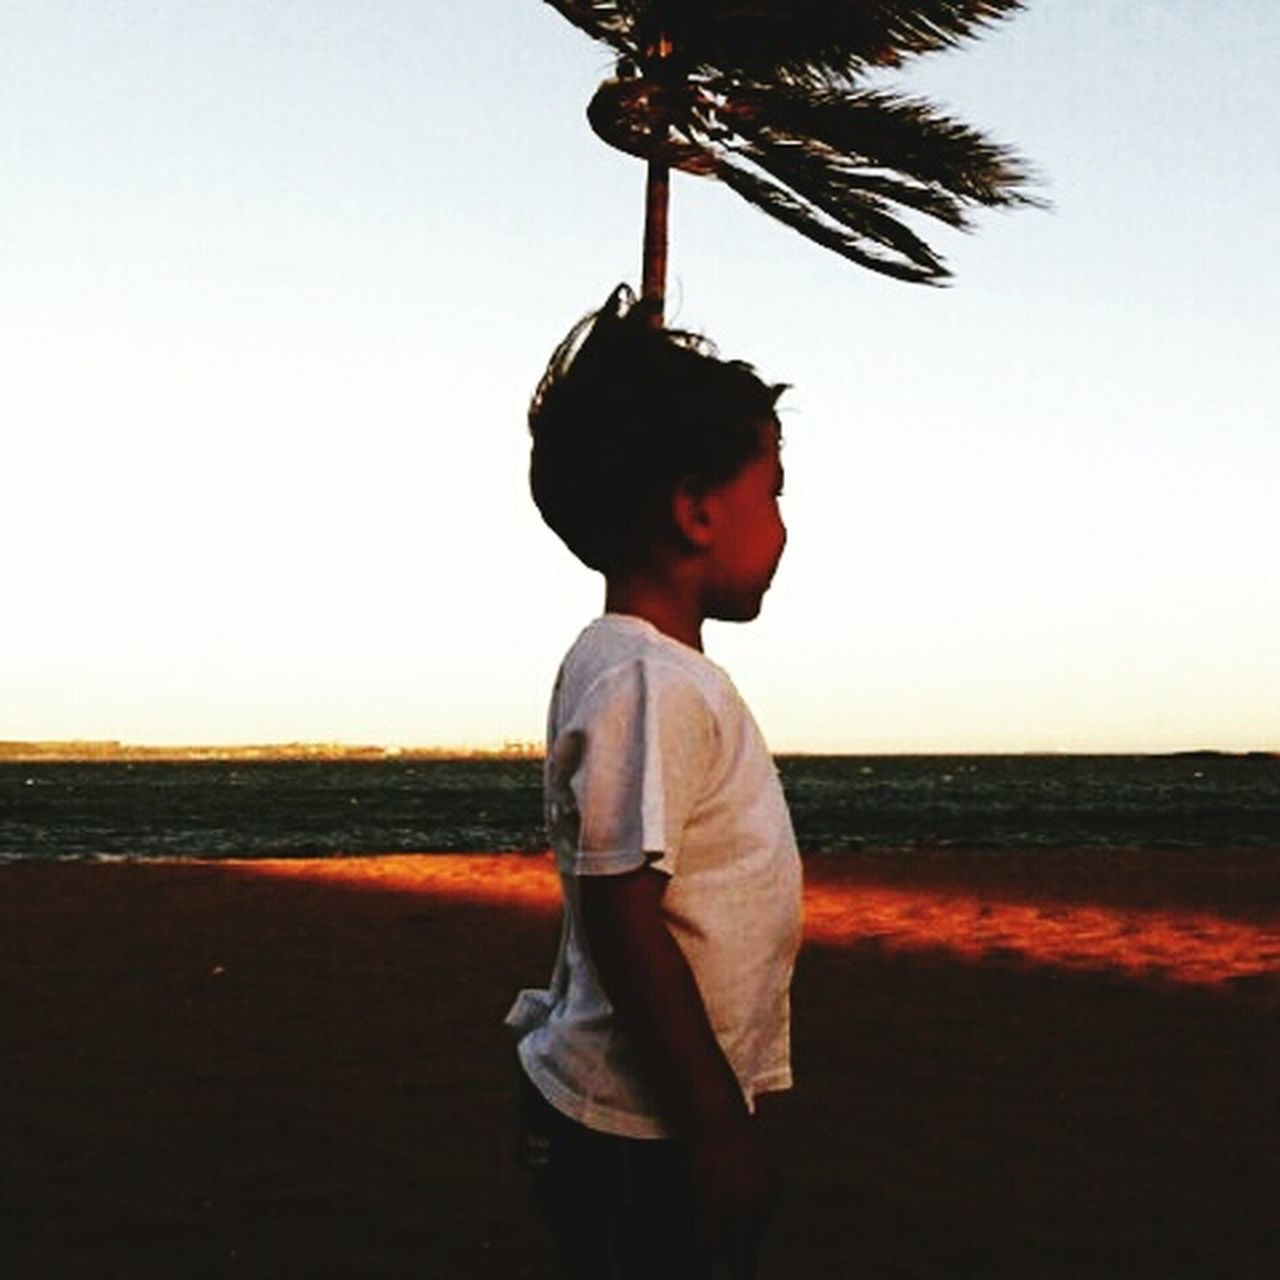 childhood, one person, boys, one boy only, child, casual clothing, children only, side view, males, standing, elementary age, outdoors, sunset, sky, full length, real people, only boys, day, people, clear sky, tree, nature, adult